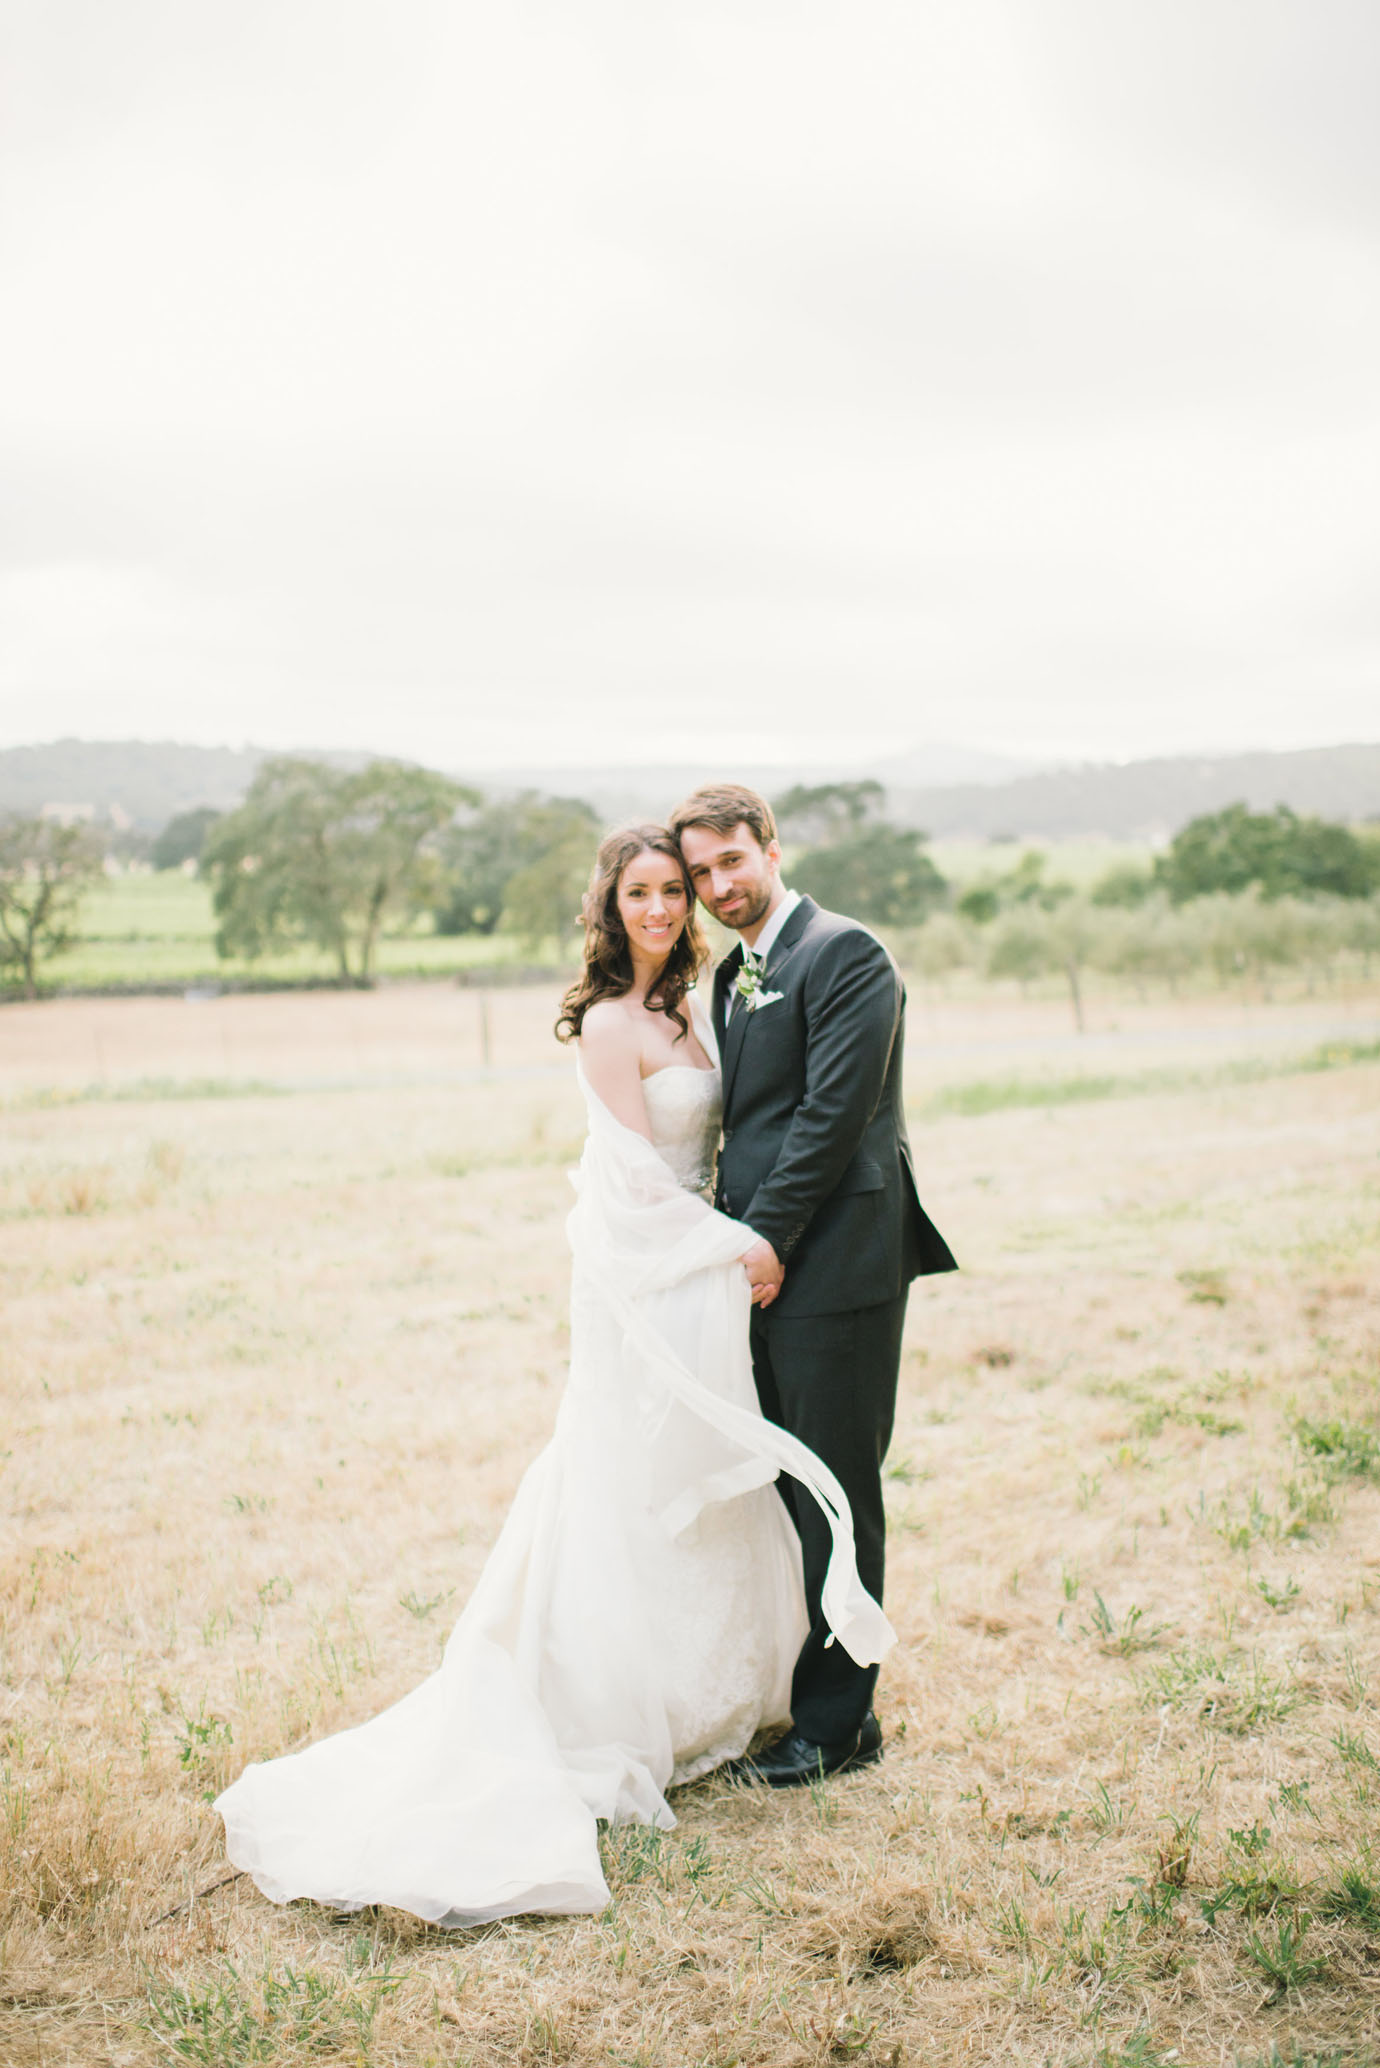 25-real-wedding-at-beltane-ranch092